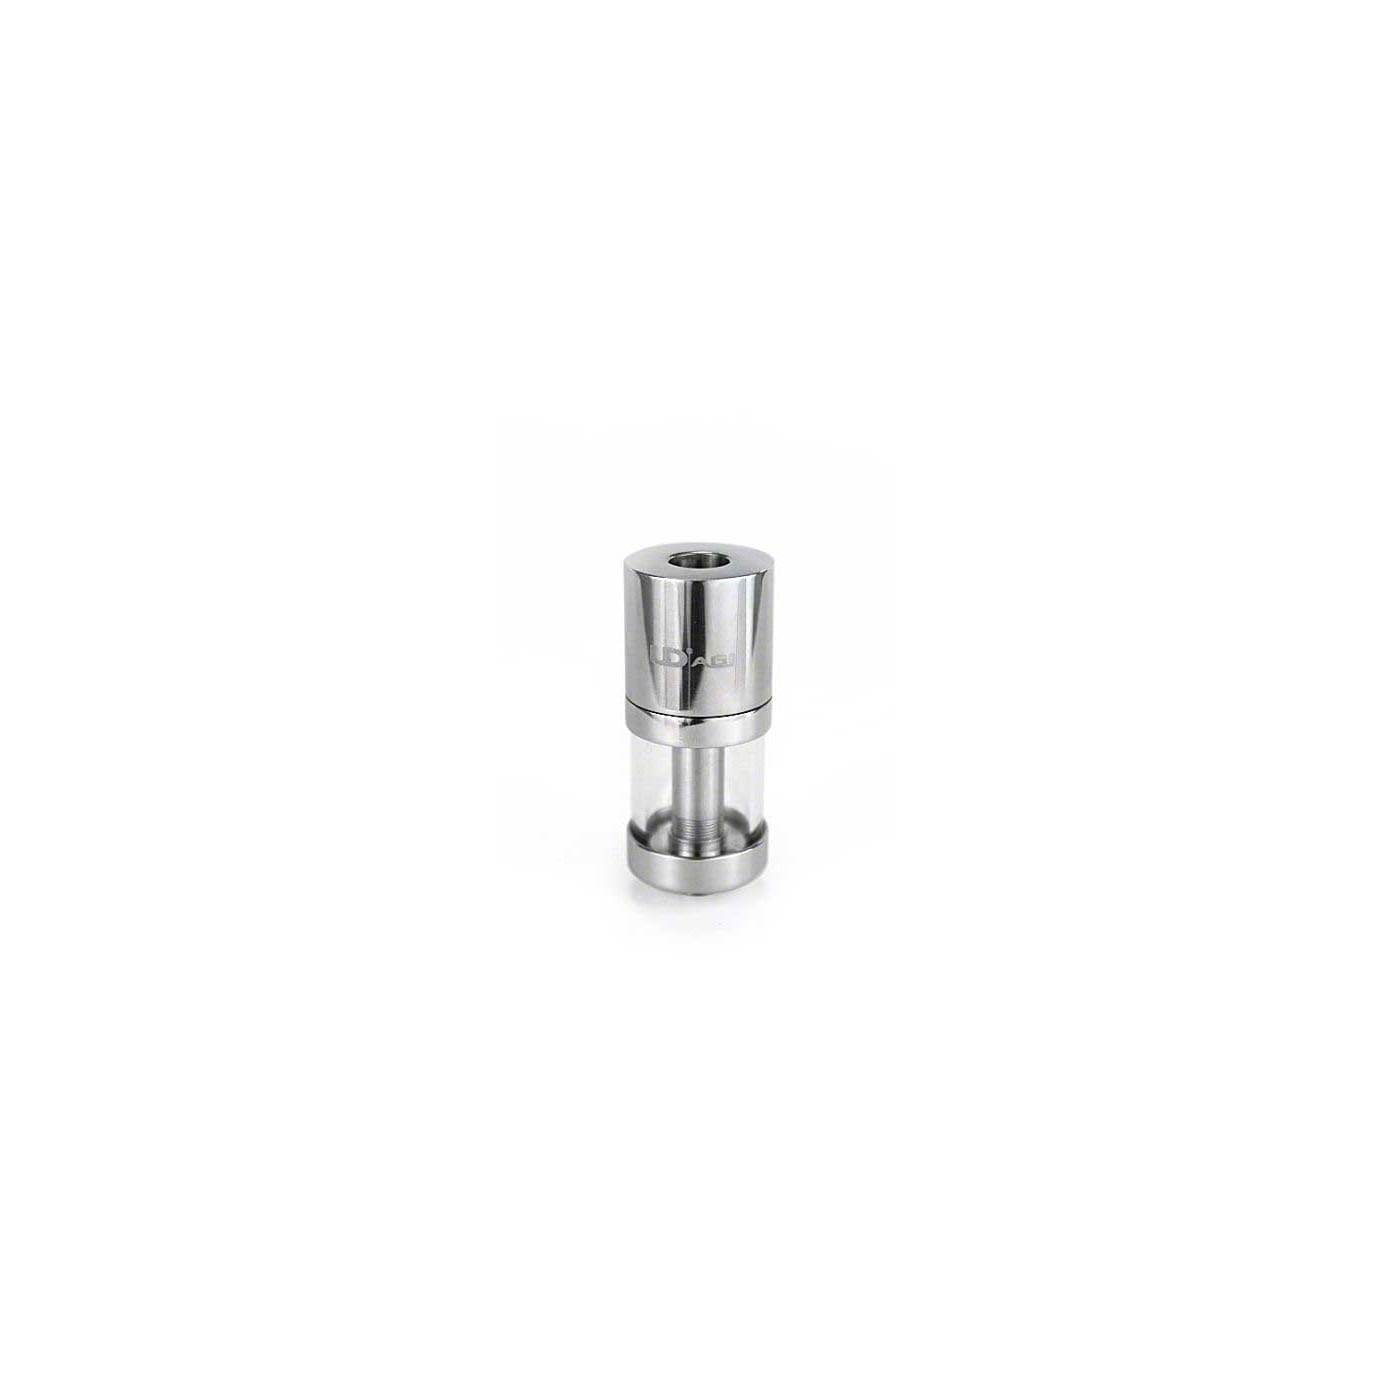 AGI 2-1 Rebuildable Atomizer